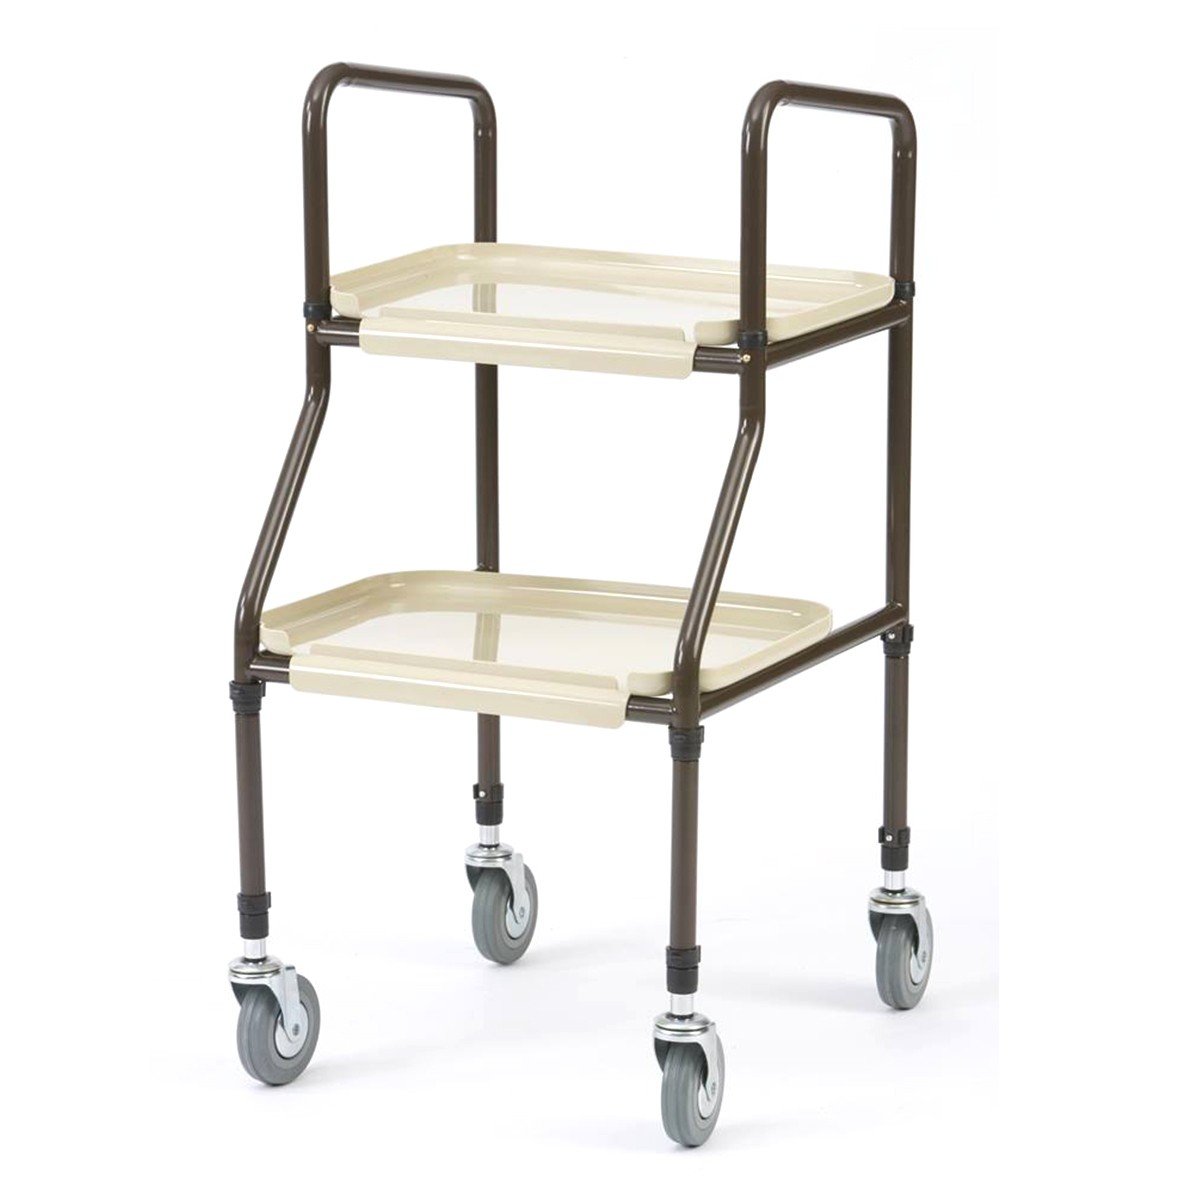 Indoor Height Adjustable Trolley